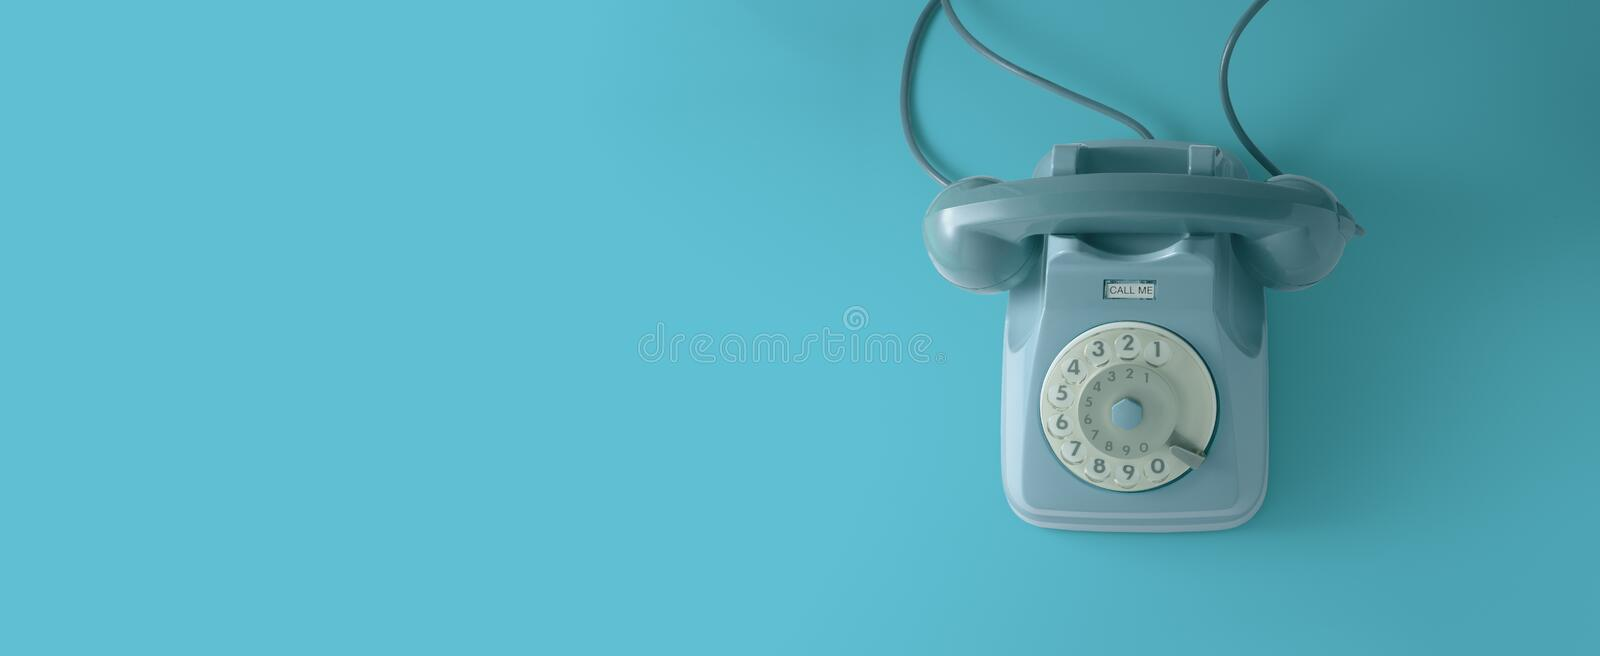 A vintage dial telephone with blue background.A blue vintage dial telephone with blue background. A blue vintage dial telephone with blue background stock photo